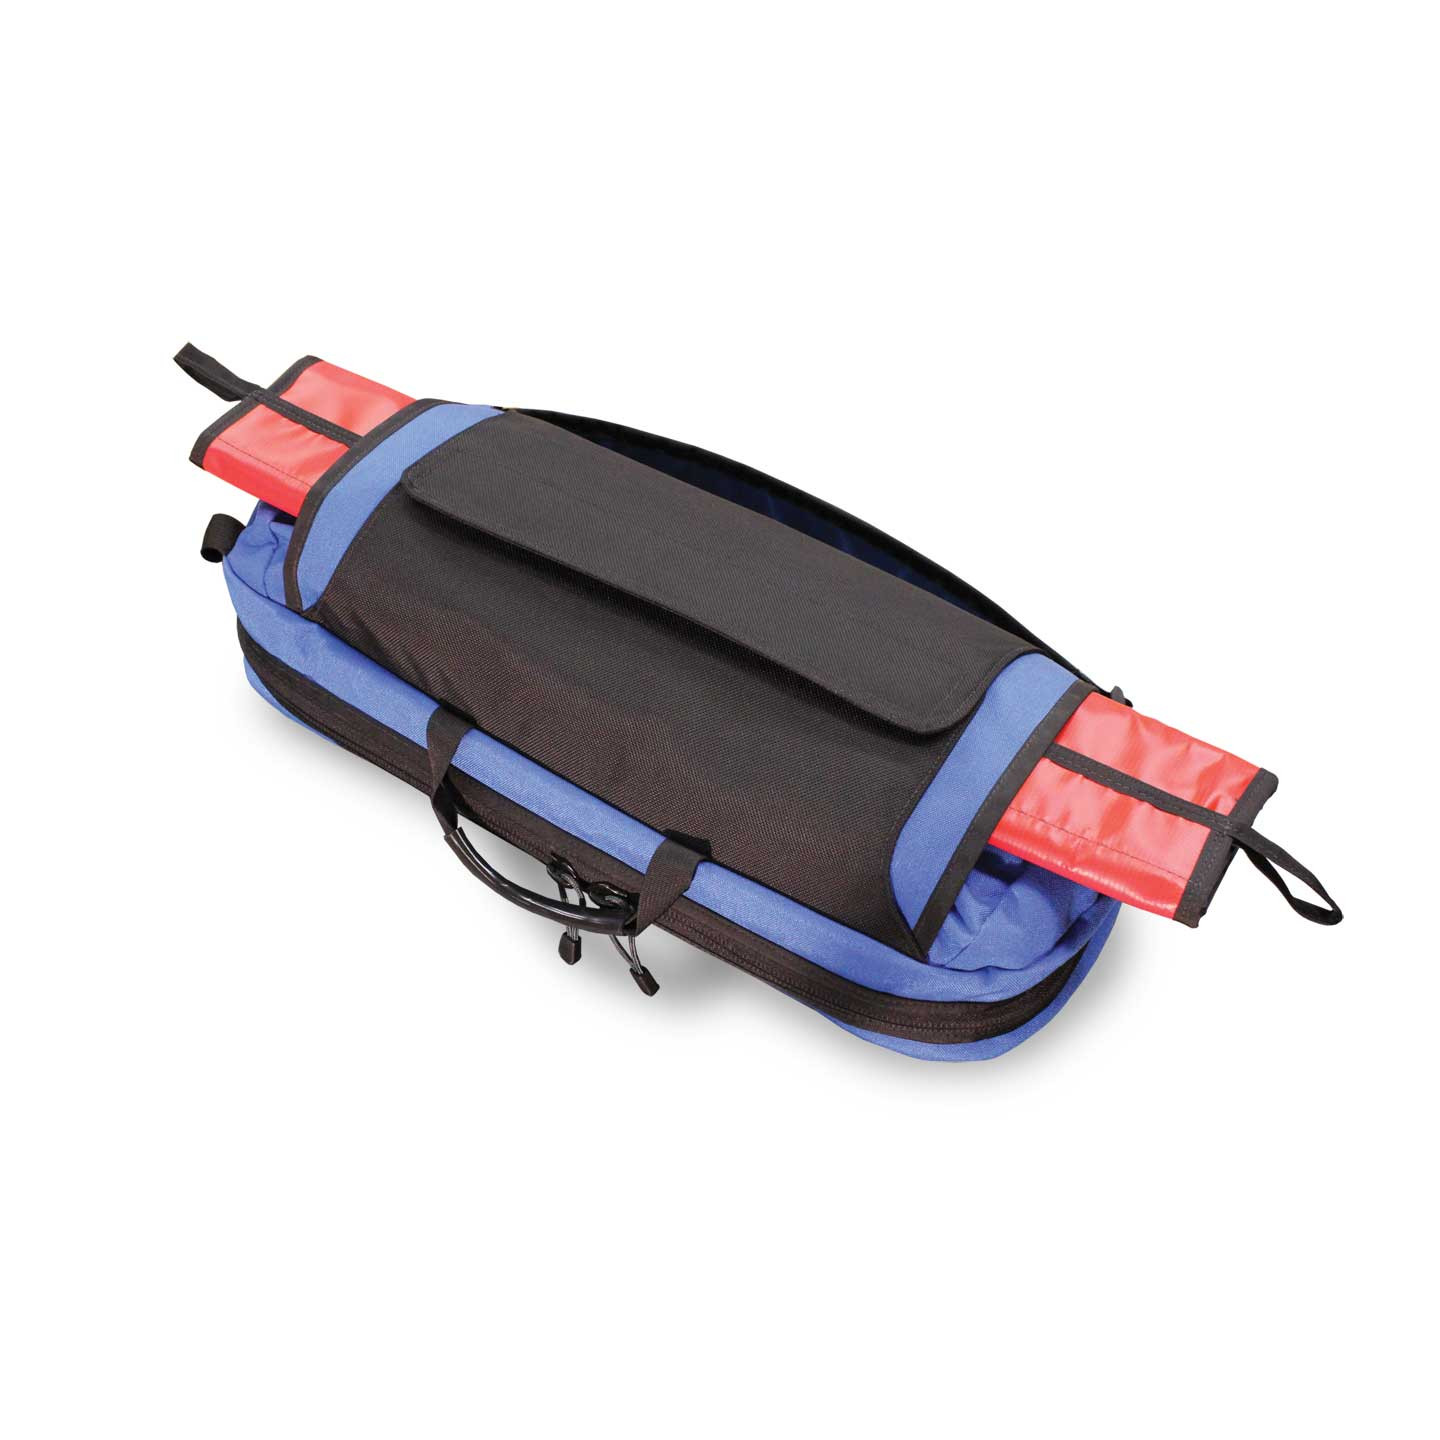 Conterra Techsar Rigging Pack has a sleeve for rope guards.